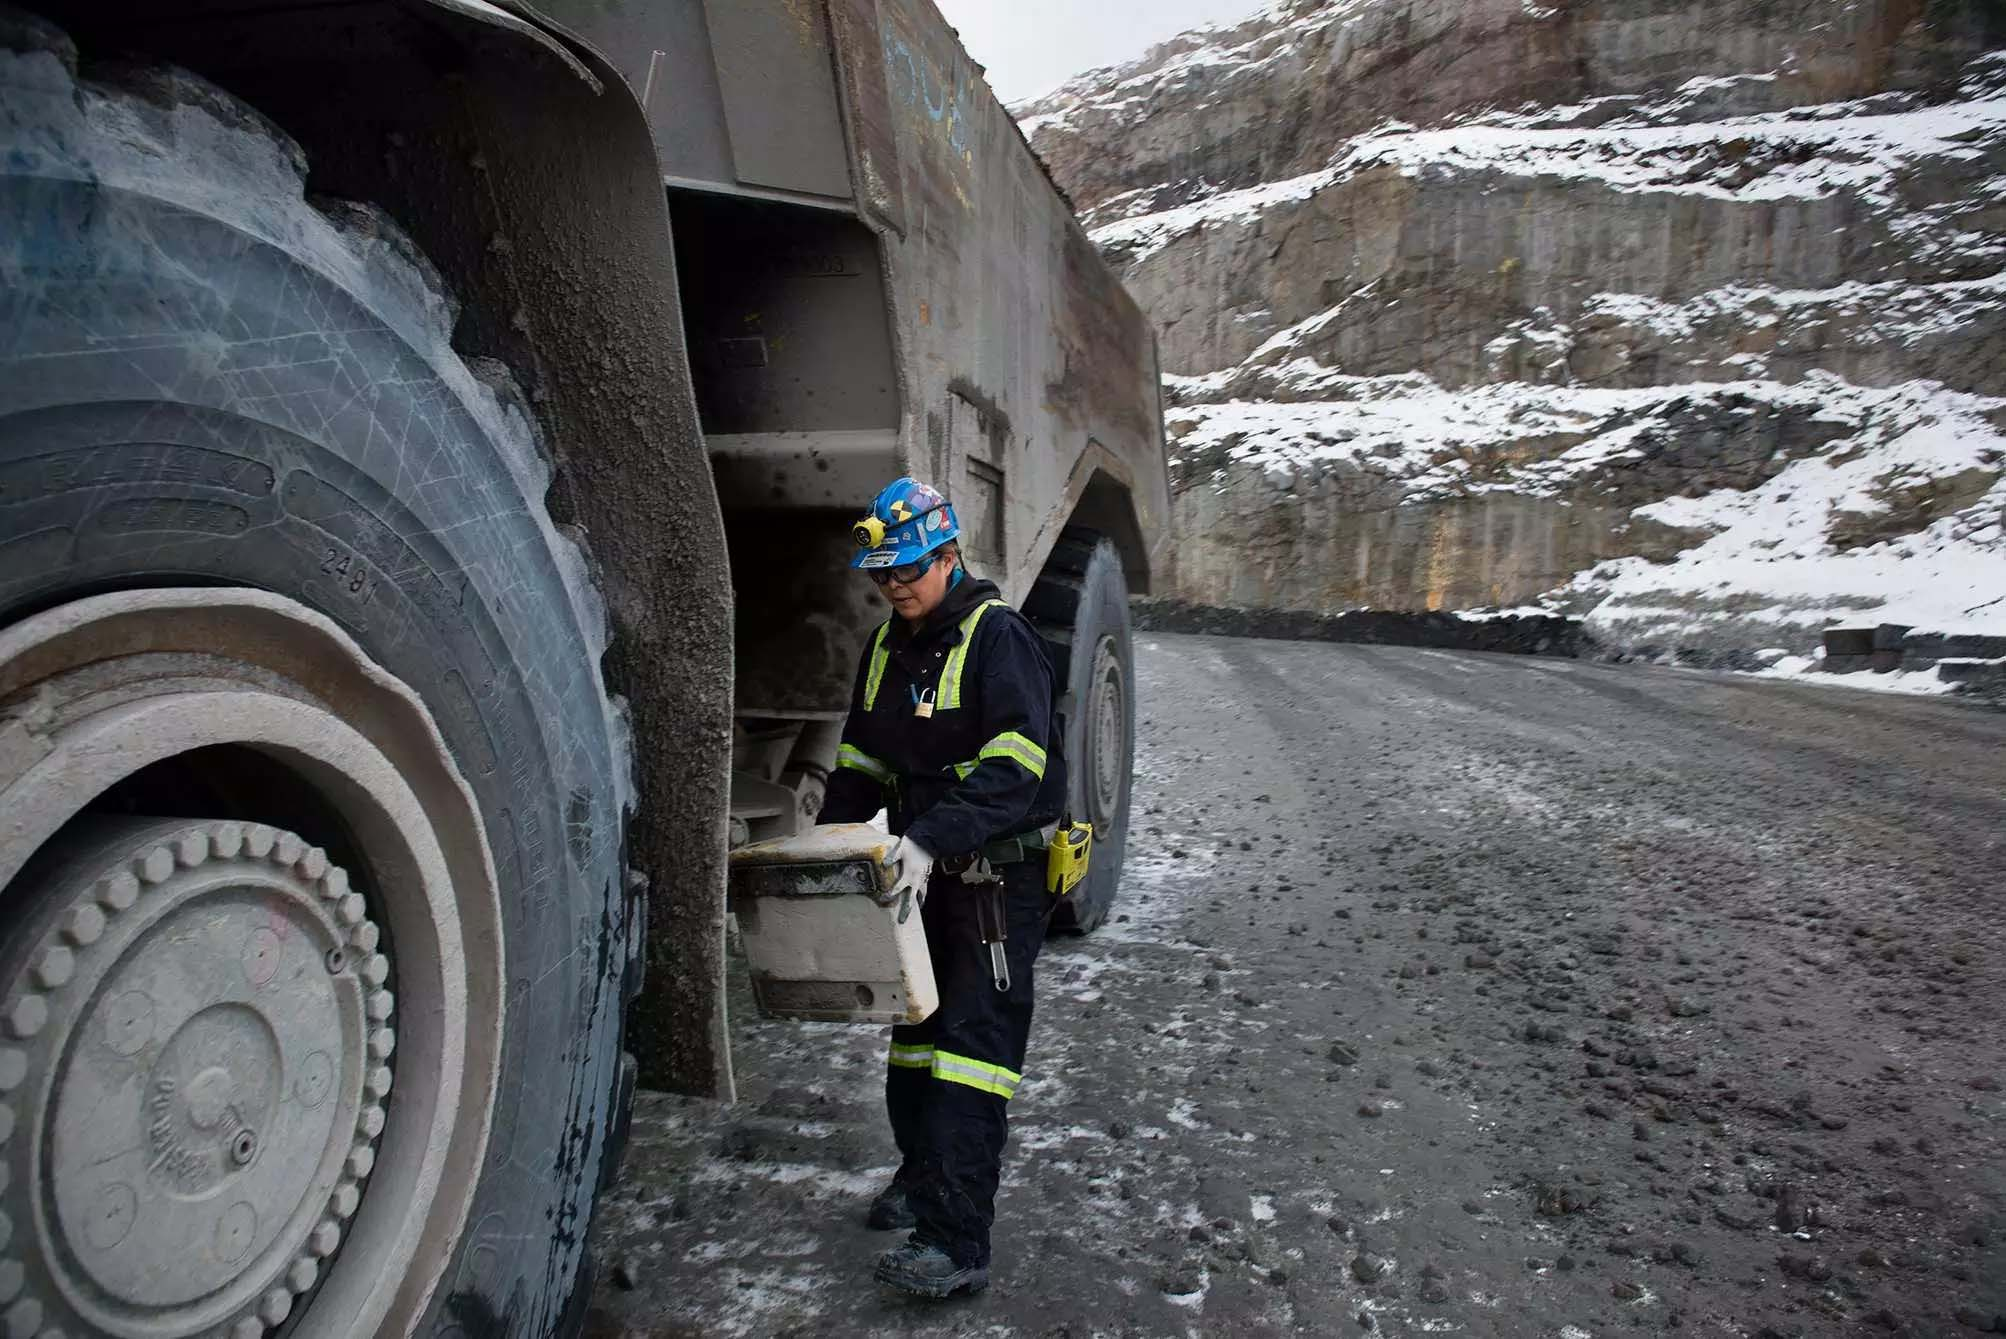 Many women thrive on challenging careers in the Canadian diamond mines of Rio Tinto and further companies